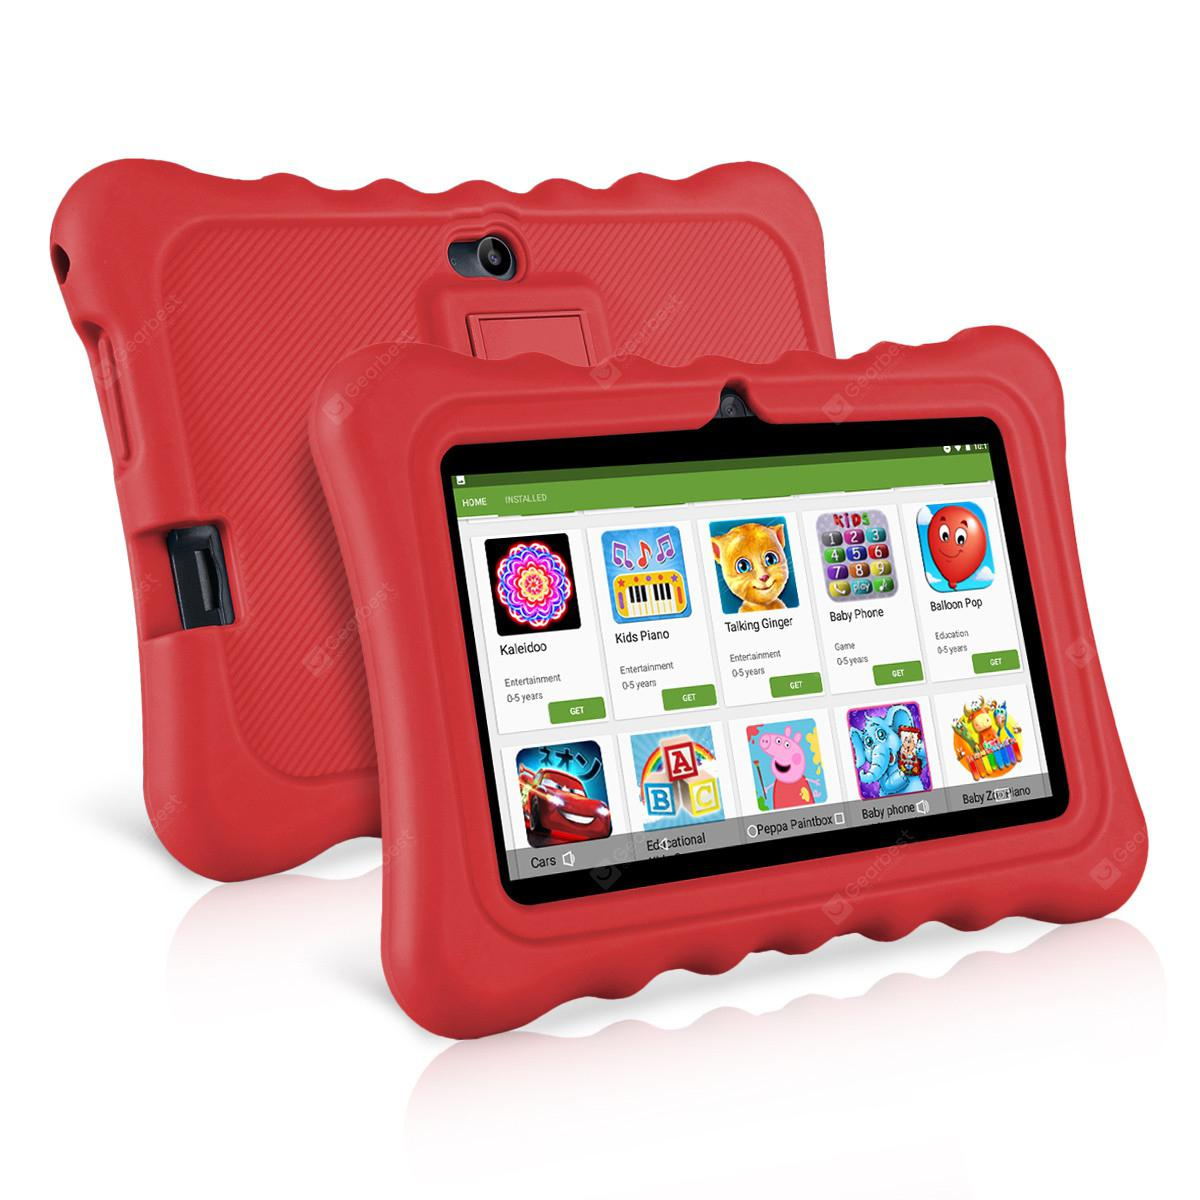 "Ainol Q88 Kids Android 7.1 OS Tablet 7"" Display 1G RAM 8 GB ROM Light Weight Portable Kid-Proof Shock-Proof Silicone Case Kickstand Available With iWawa For Kids Education Entertainment --RED"